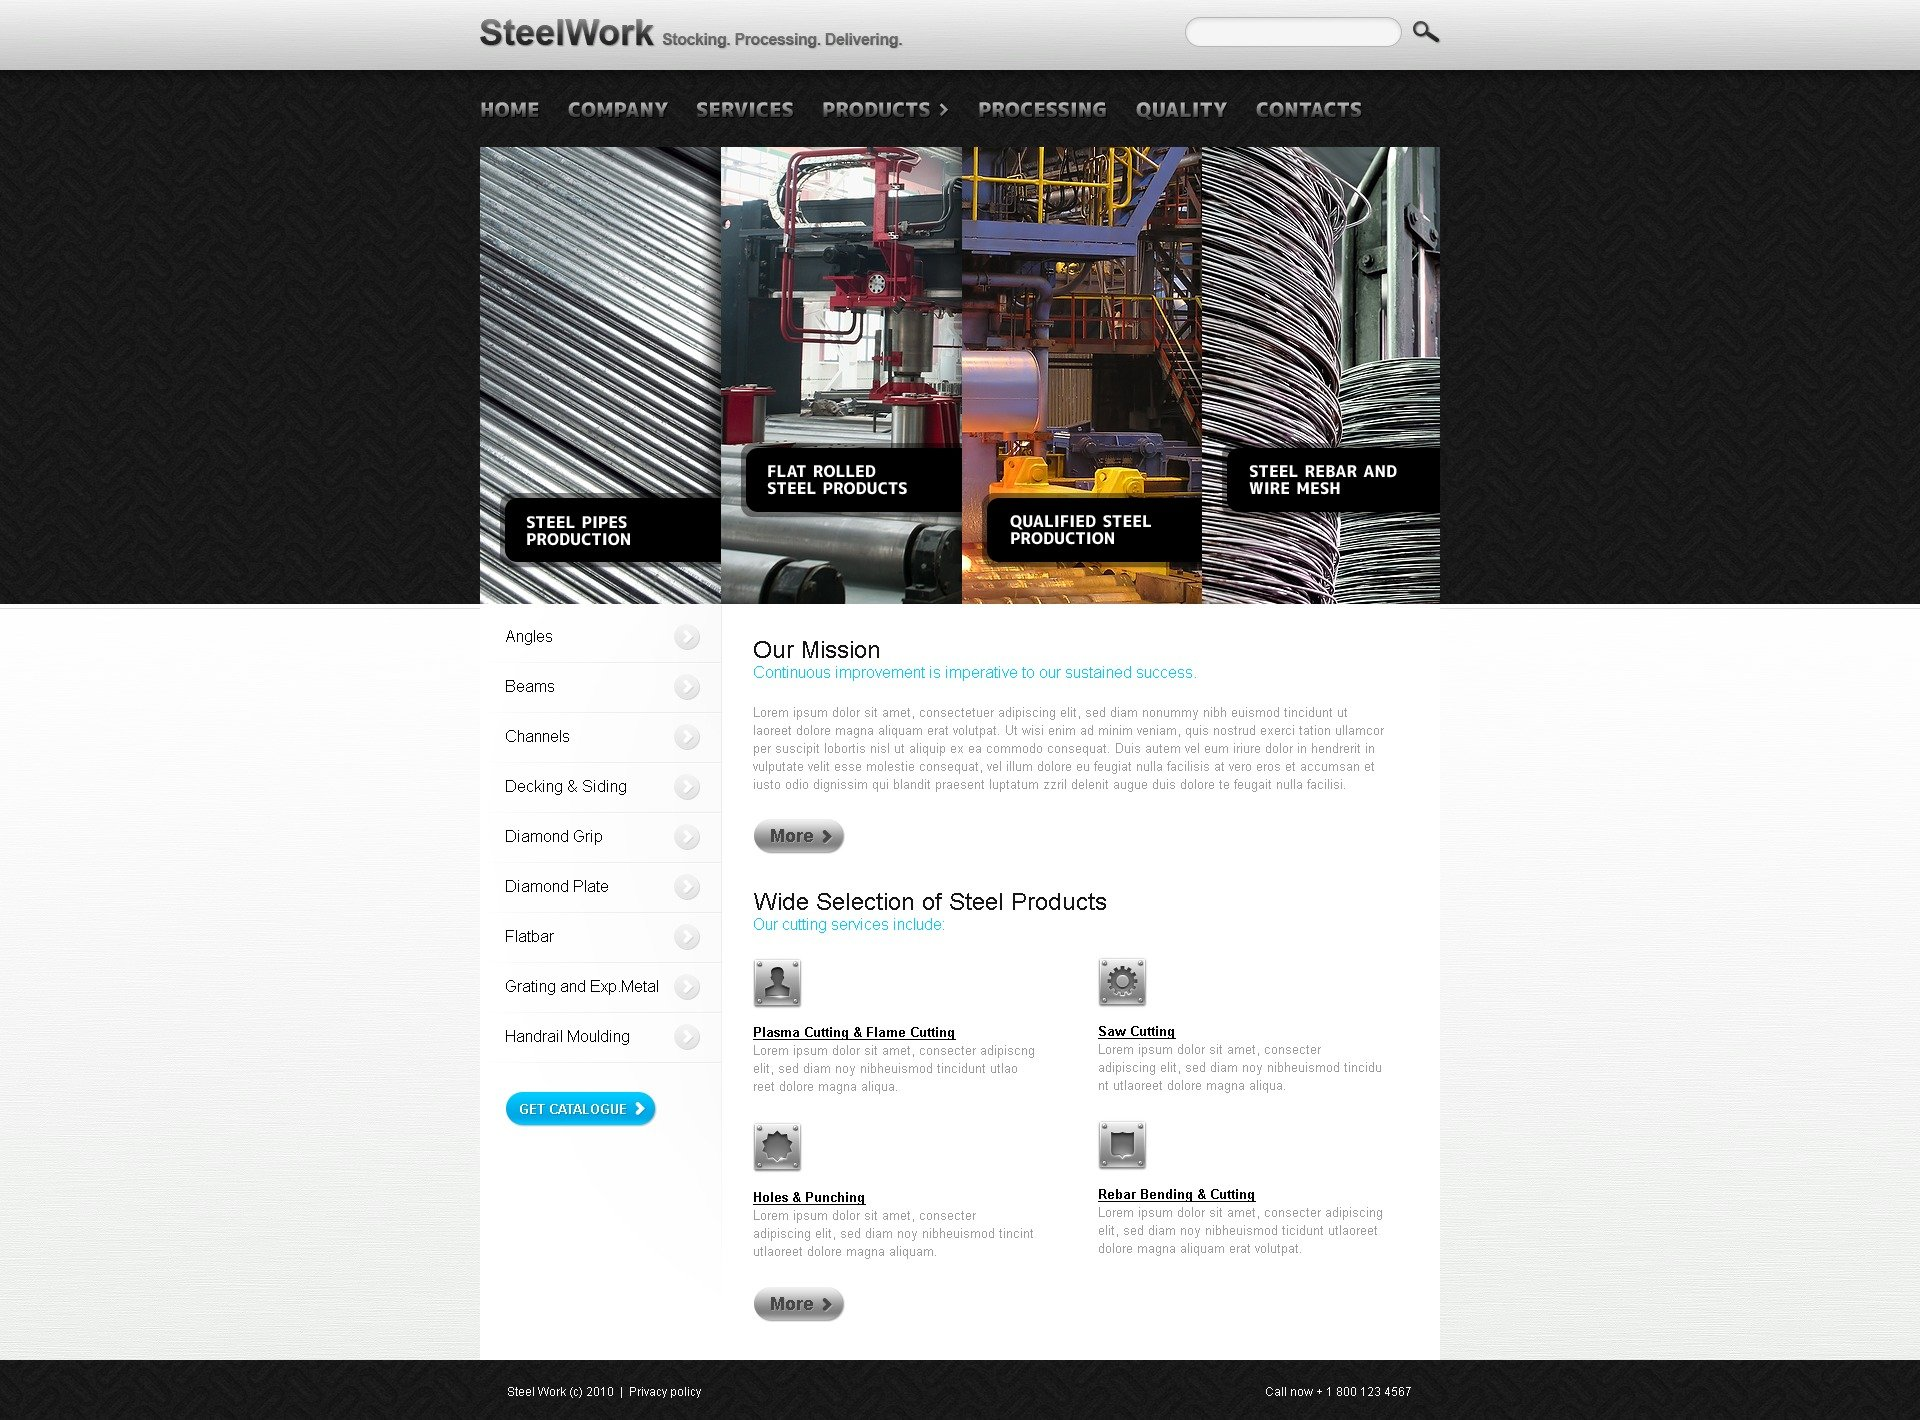 The Steel Work PSD Design 54335, one of the best PSD templates of its kind (industrial, flash 8, wide), also known as steel work PSD template, processing PSD template, welding company PSD template, industry PSD template, steel PSD template, workshop PSD template, business PSD template, modern facility PSD template, scarf PSD template, autogenous PSD template, oxy-acetylene PSD template, arc PSD template, staff PSD template, about PSD template, us PSD template, products PSD template, contacts PSD template, industry PSD template, pick PSD template, process PSD template, quality PSD template, construction PSD template, excellent PSD template, aftercare PSD template, service PSD template, delivery PSD template, time PSD template, work PSD template, job  succe and related with steel work, processing, welding company, industry, steel, workshop, business, modern facility, scarf, autogenous, oxy-acetylene, arc, staff, about, us, products, contacts, industry, pick, process, quality, construction, excellent, aftercare, service, delivery, time, work, job  succe, etc.